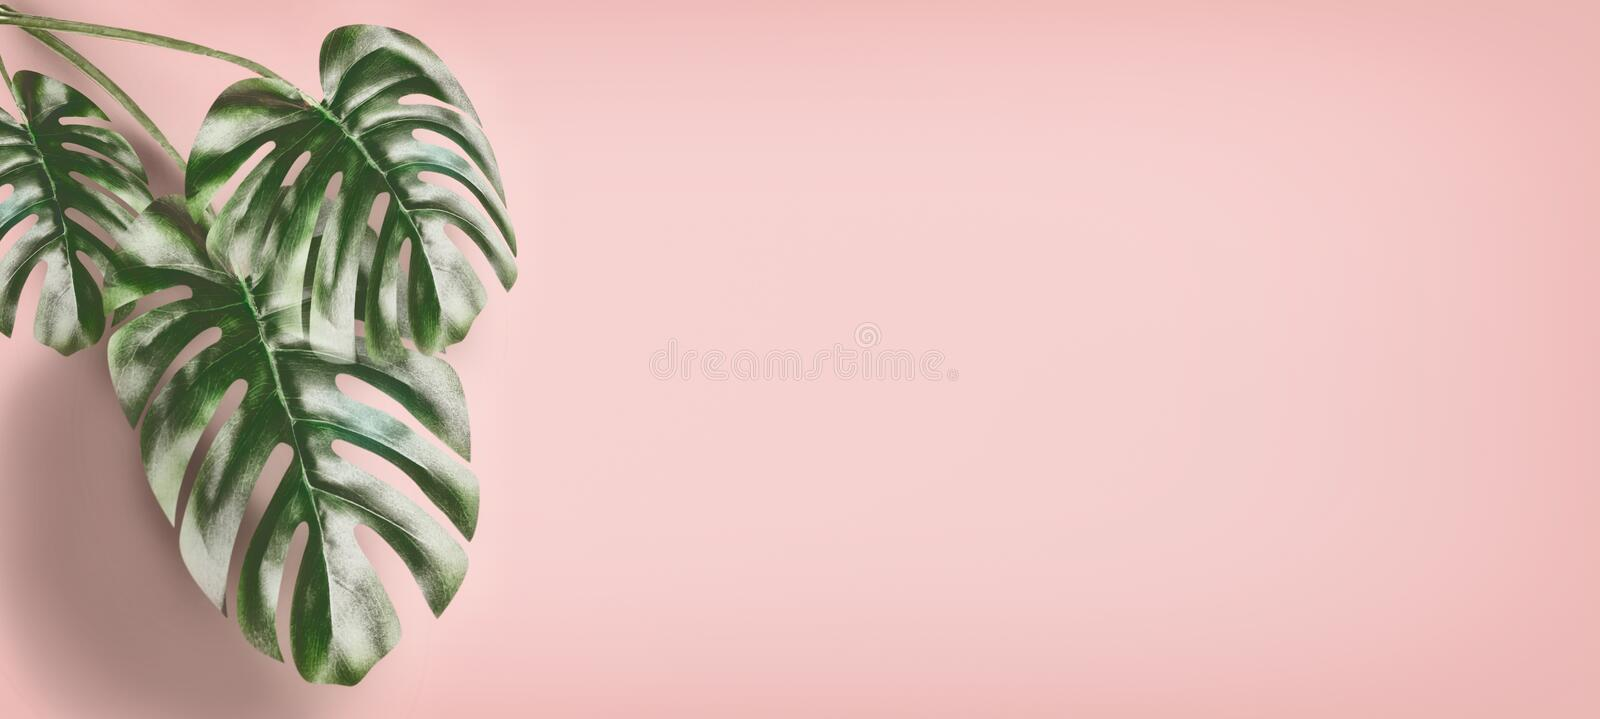 Tropical Monstera leaves at pastel pink background, summer background with copy space for design royalty free stock image